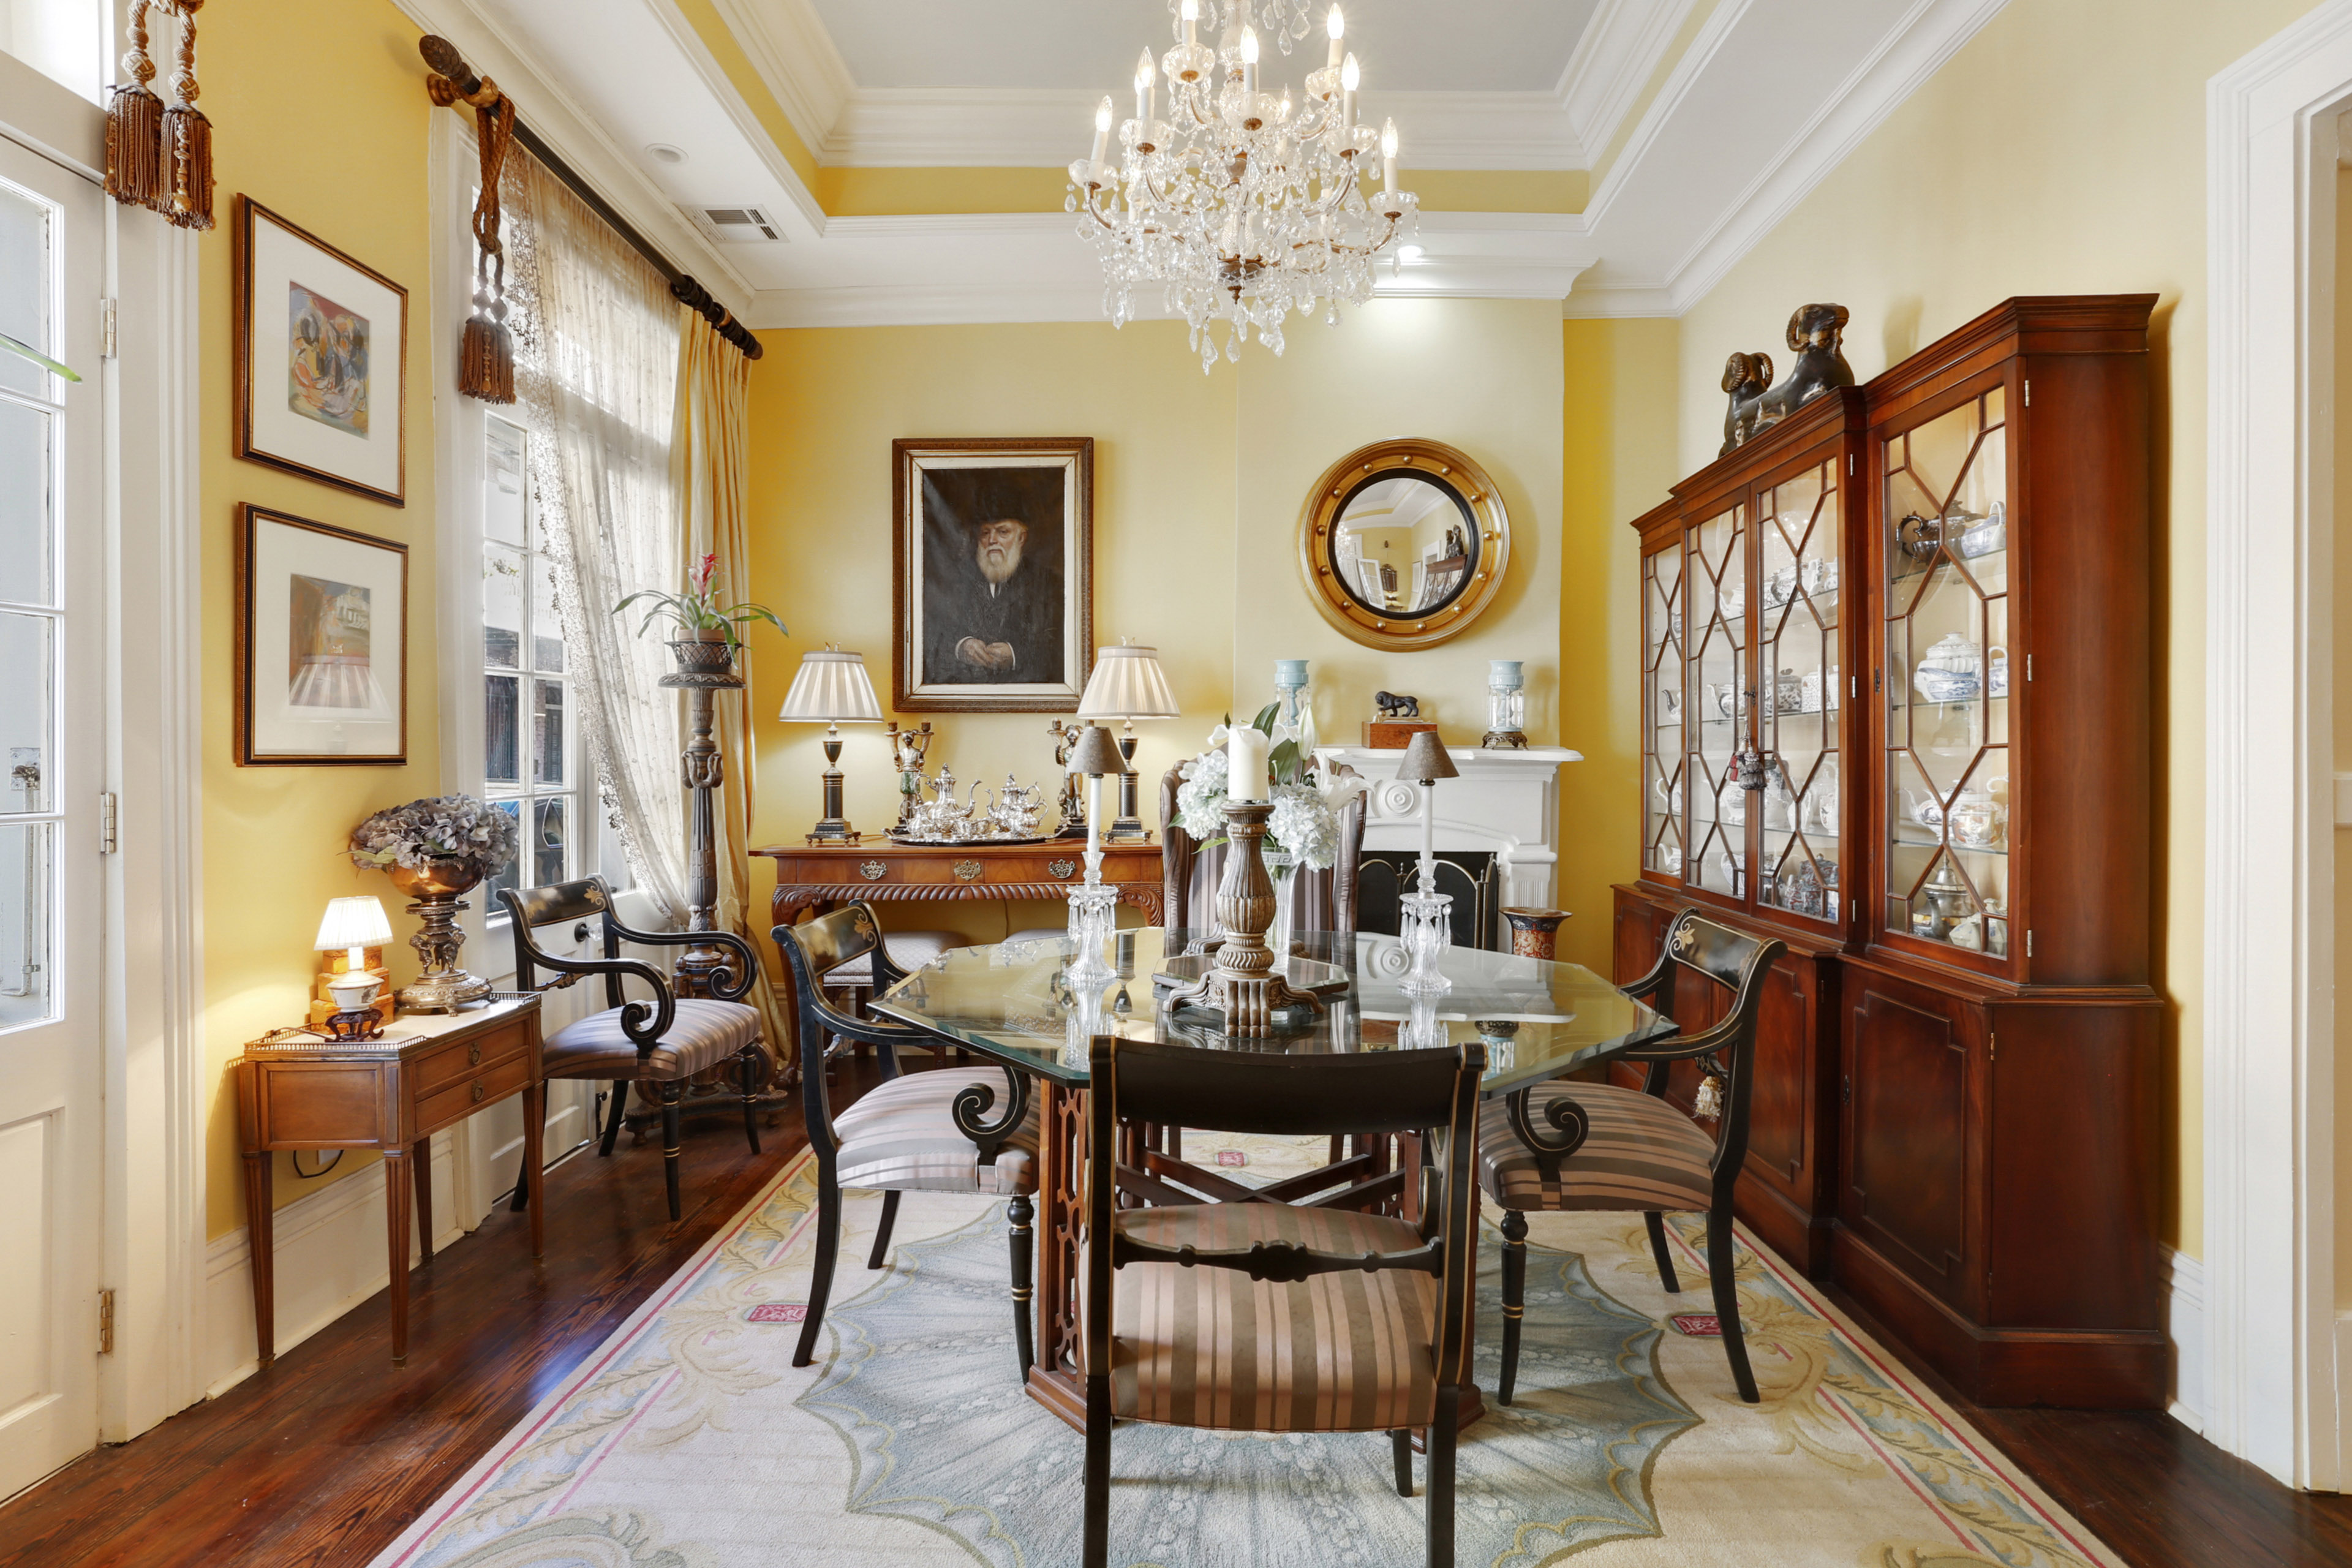 spacious french quarter townhouse asks 1 4m curbed new orleans inside the home has soaring 12 foot ceilings and dark wood floors installed throughout the home the total living space is 2 572 which encompasses the